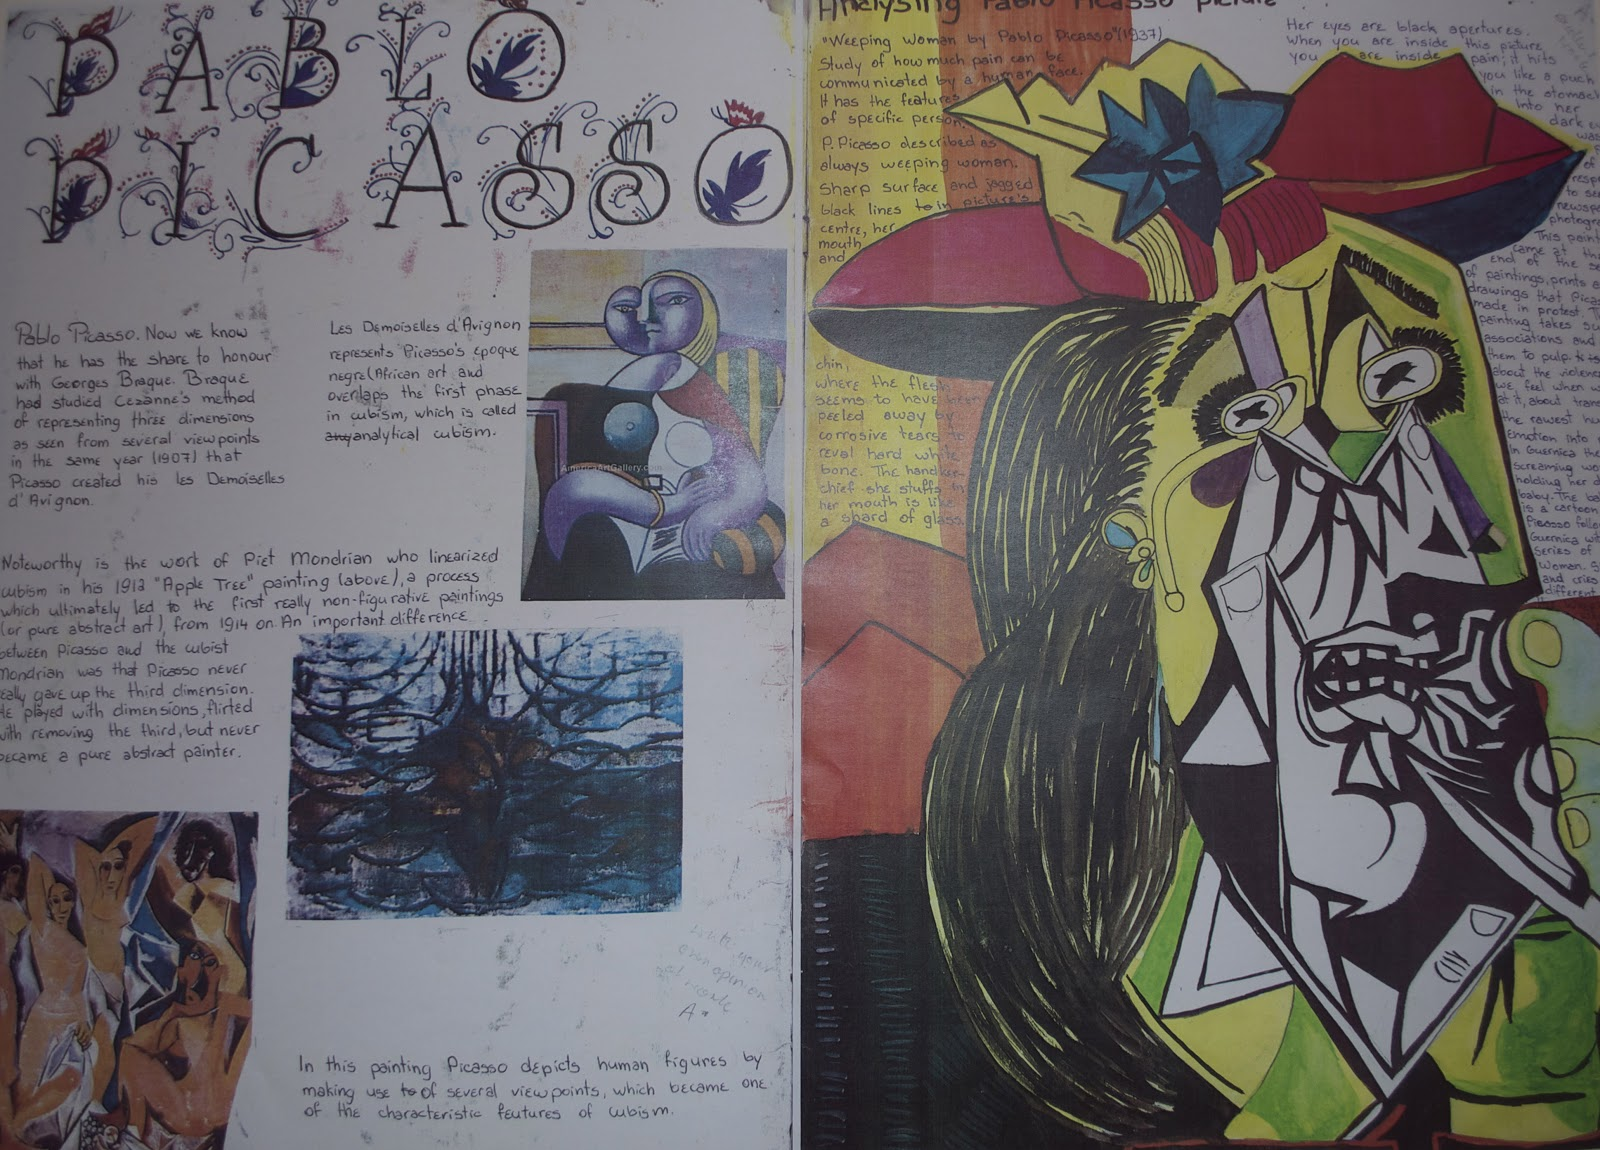 Essay On Pablo Picasso